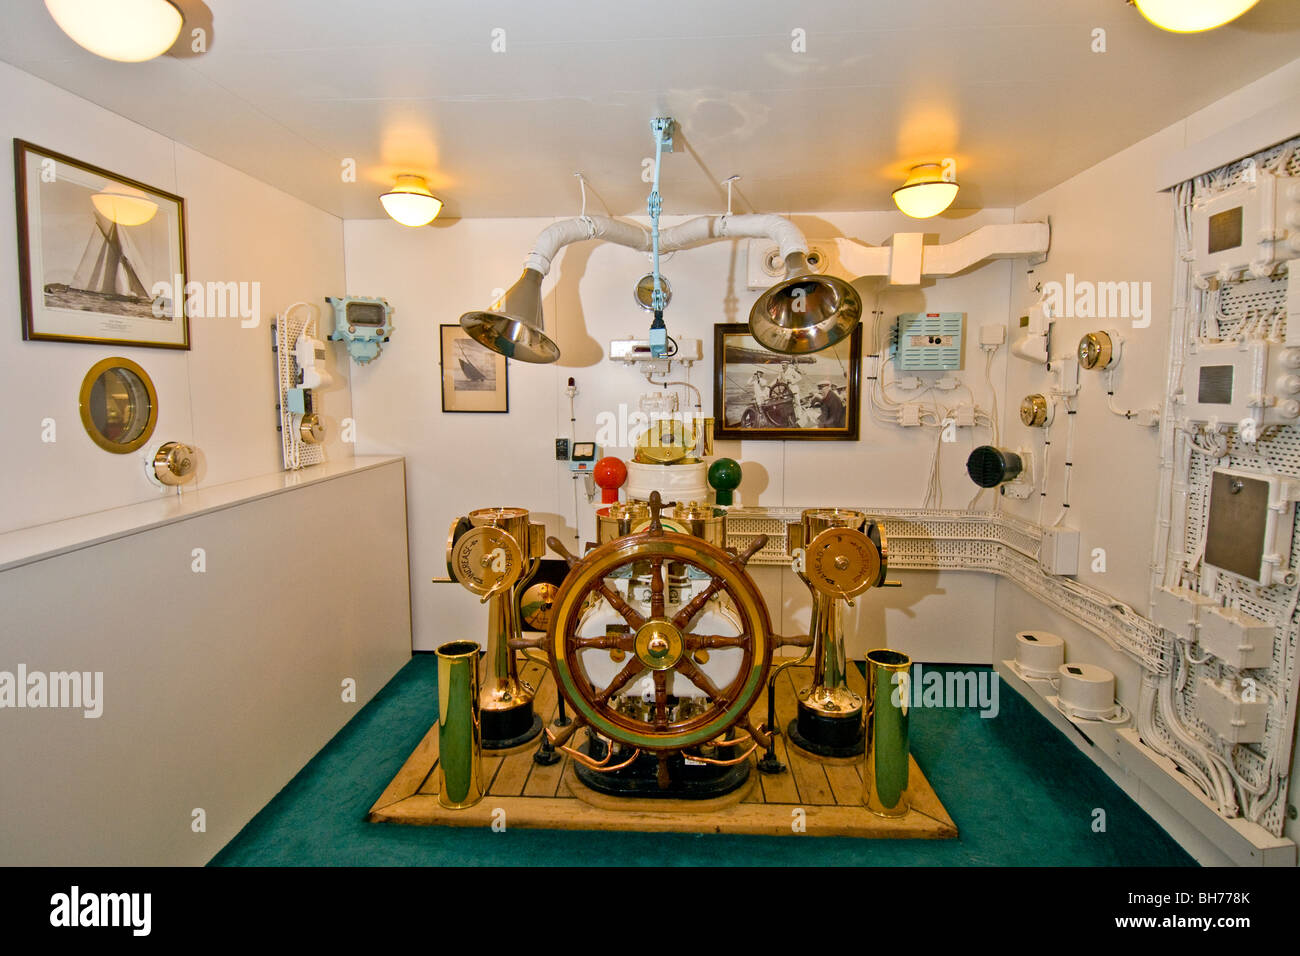 Reconstruction Of The Royal Yacht Britannia Wheelhouse In The Visitor Stock Photo Royalty Free